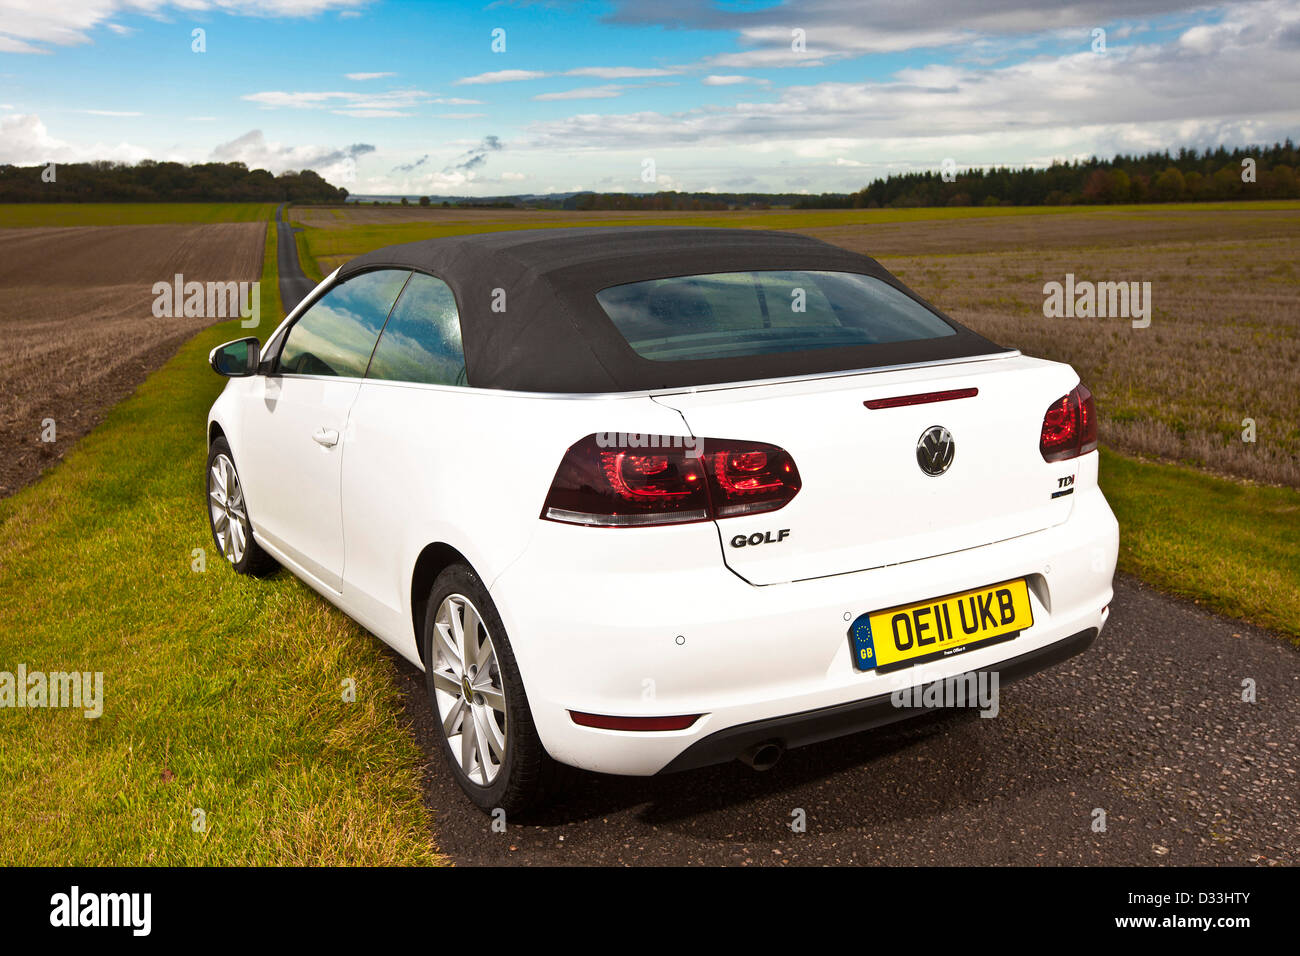 Volkswagen Golf 1.6 TDI convertible on country lane, Winchester, UK, 25 10 2010 - Stock Image